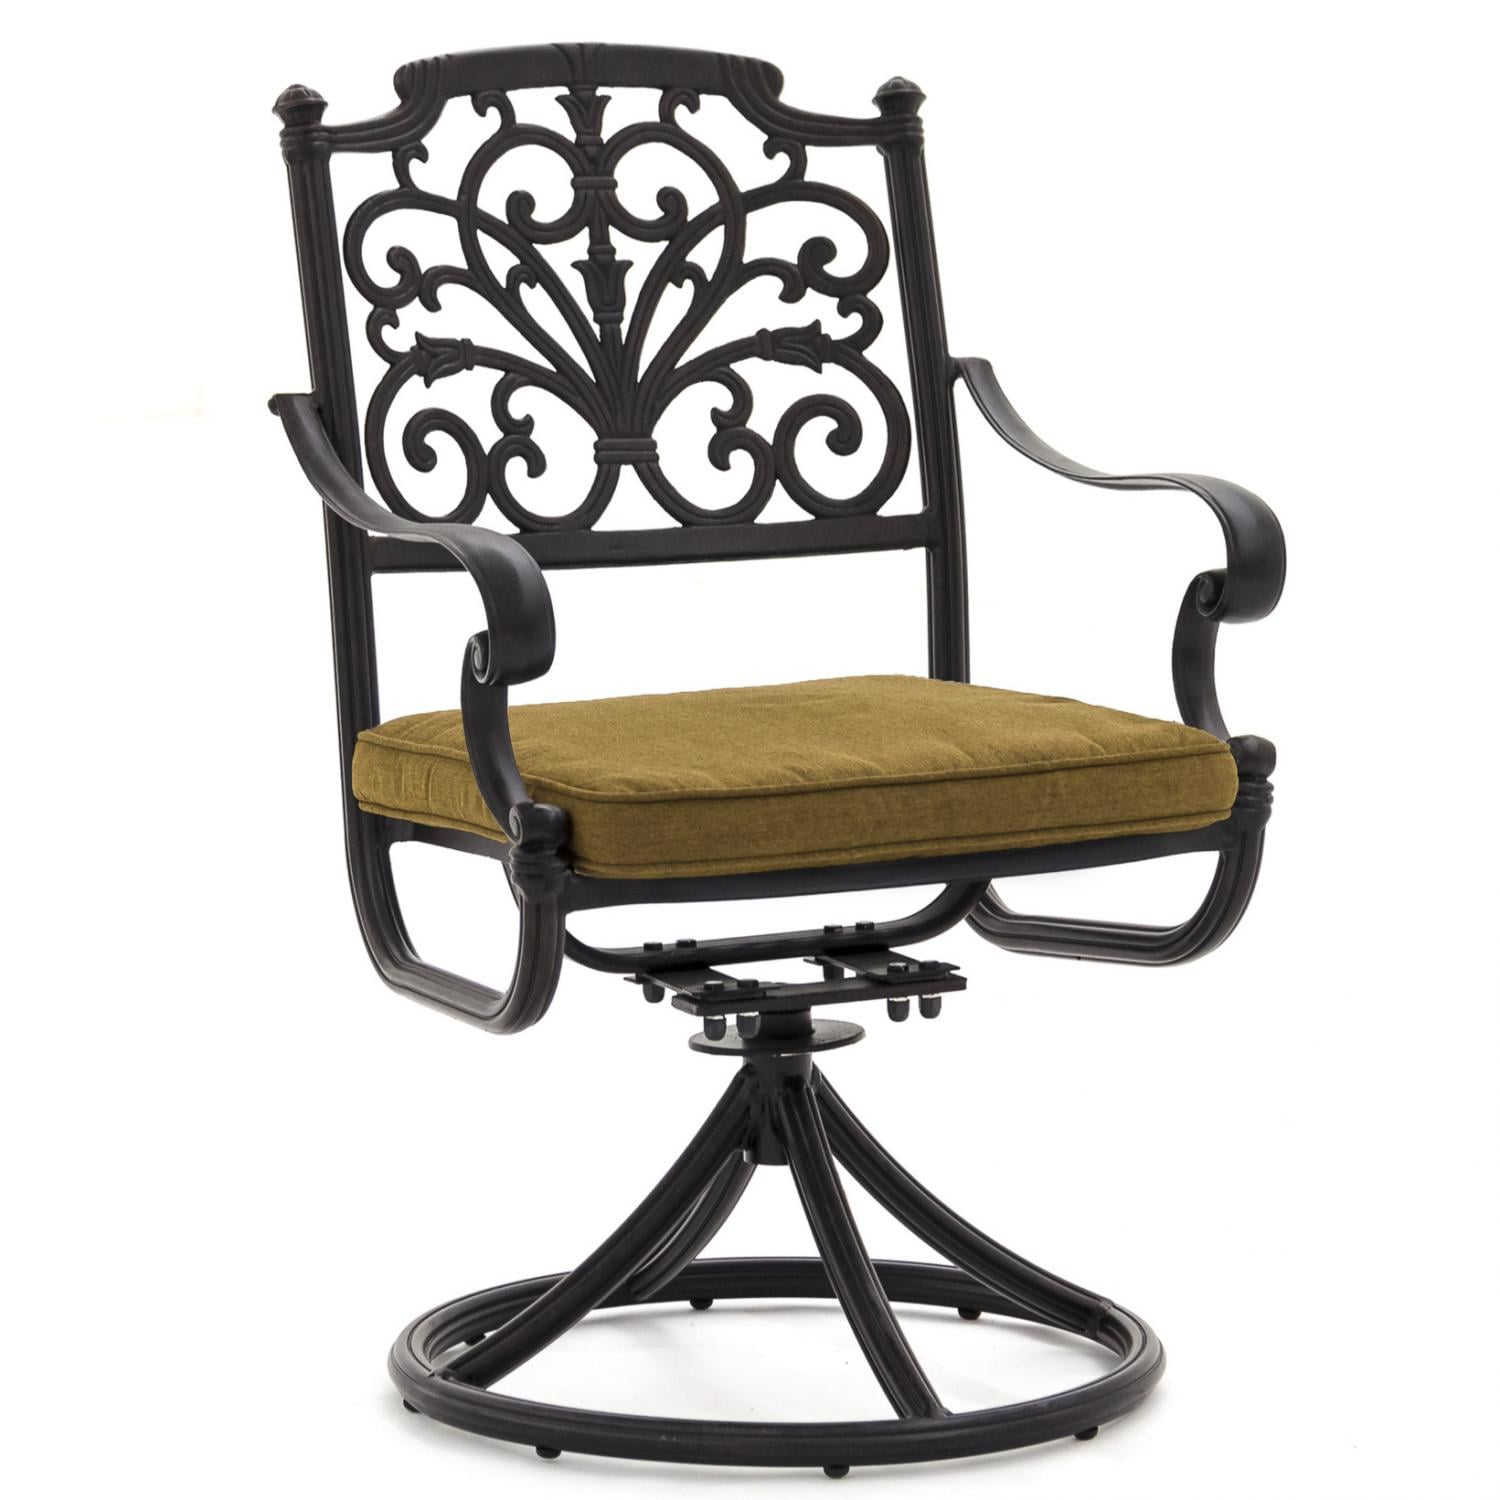 Evangeline cast aluminum patio swivel rocker dining chair for Aluminum patio chairs